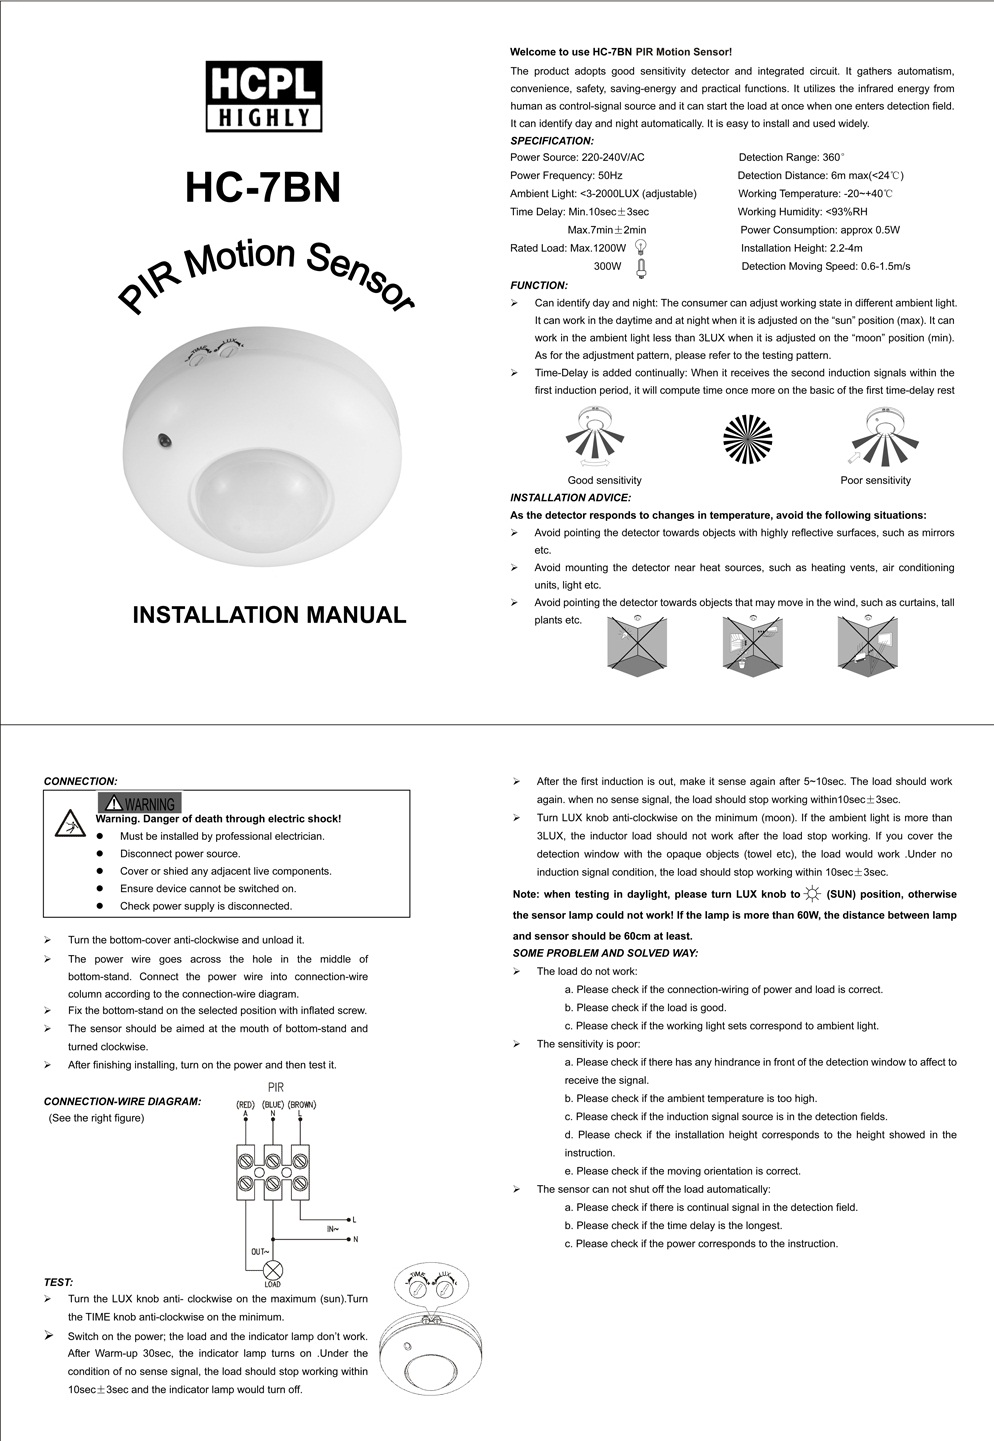 Ceiling Mount Pir Motion Sensor Manufacturer Dealers Sensors Light Further Alarm Wiring Diagram Also Download 360 Hc 7bn